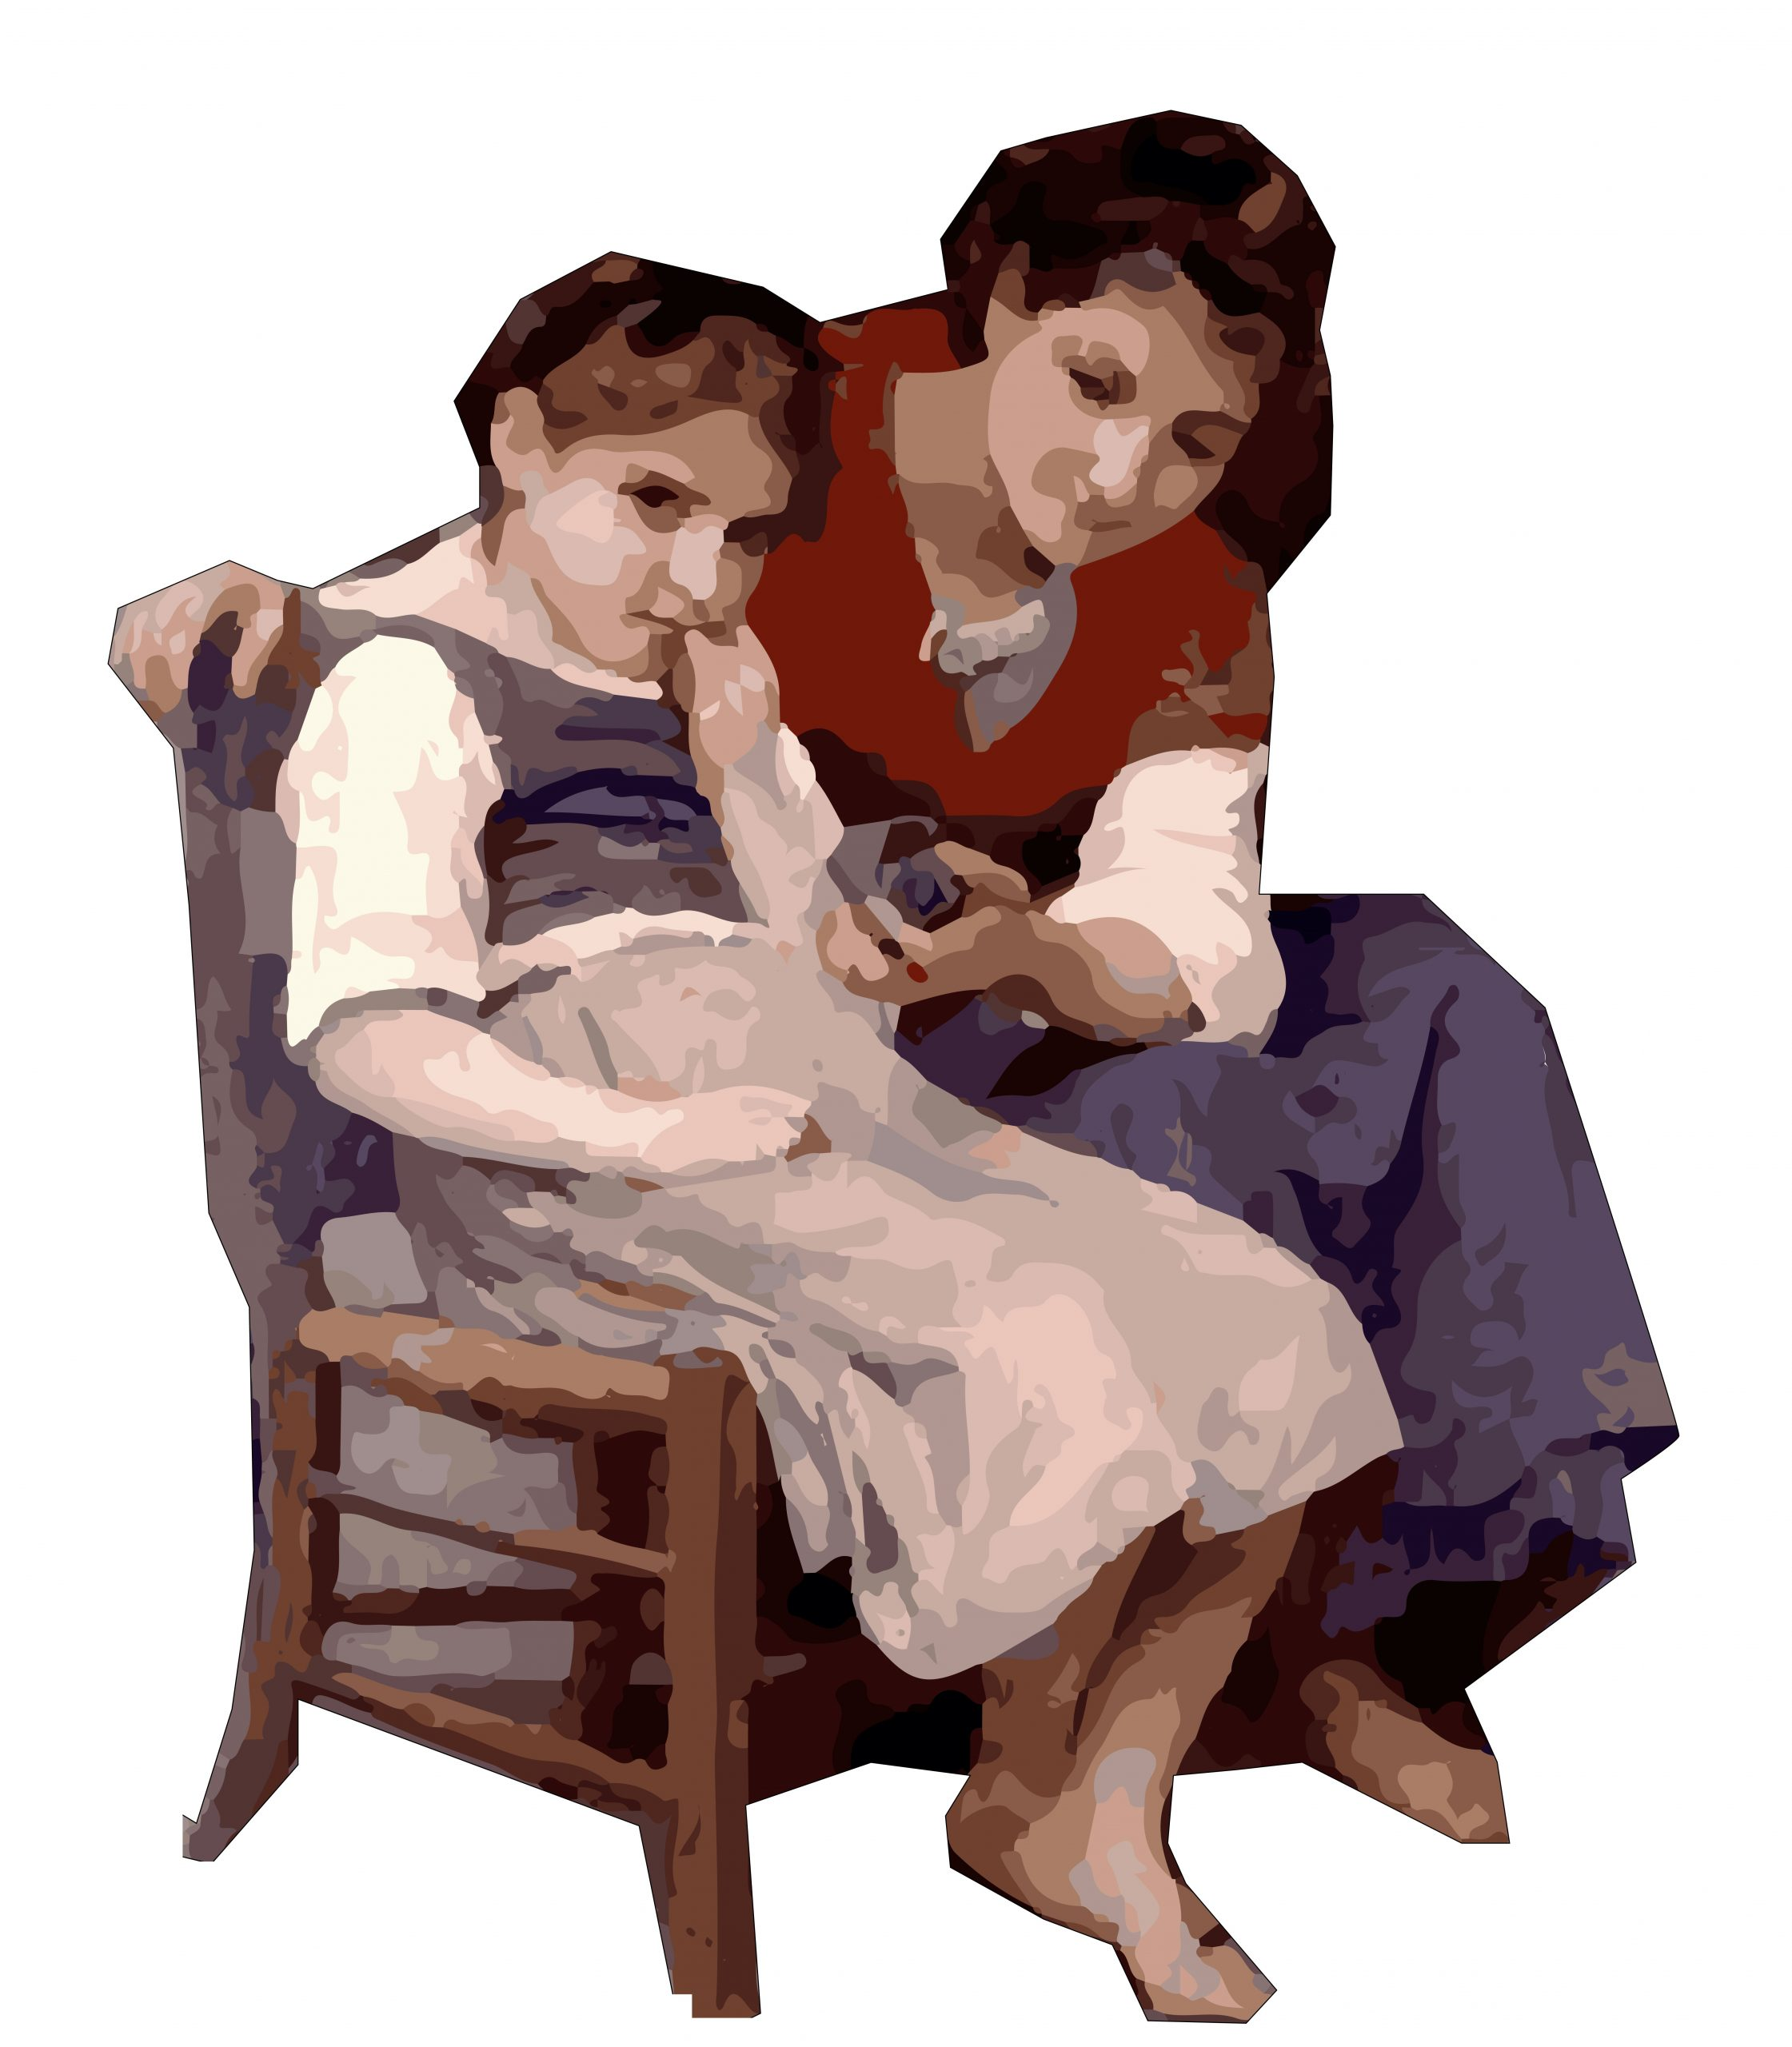 A woman and daughter illustration